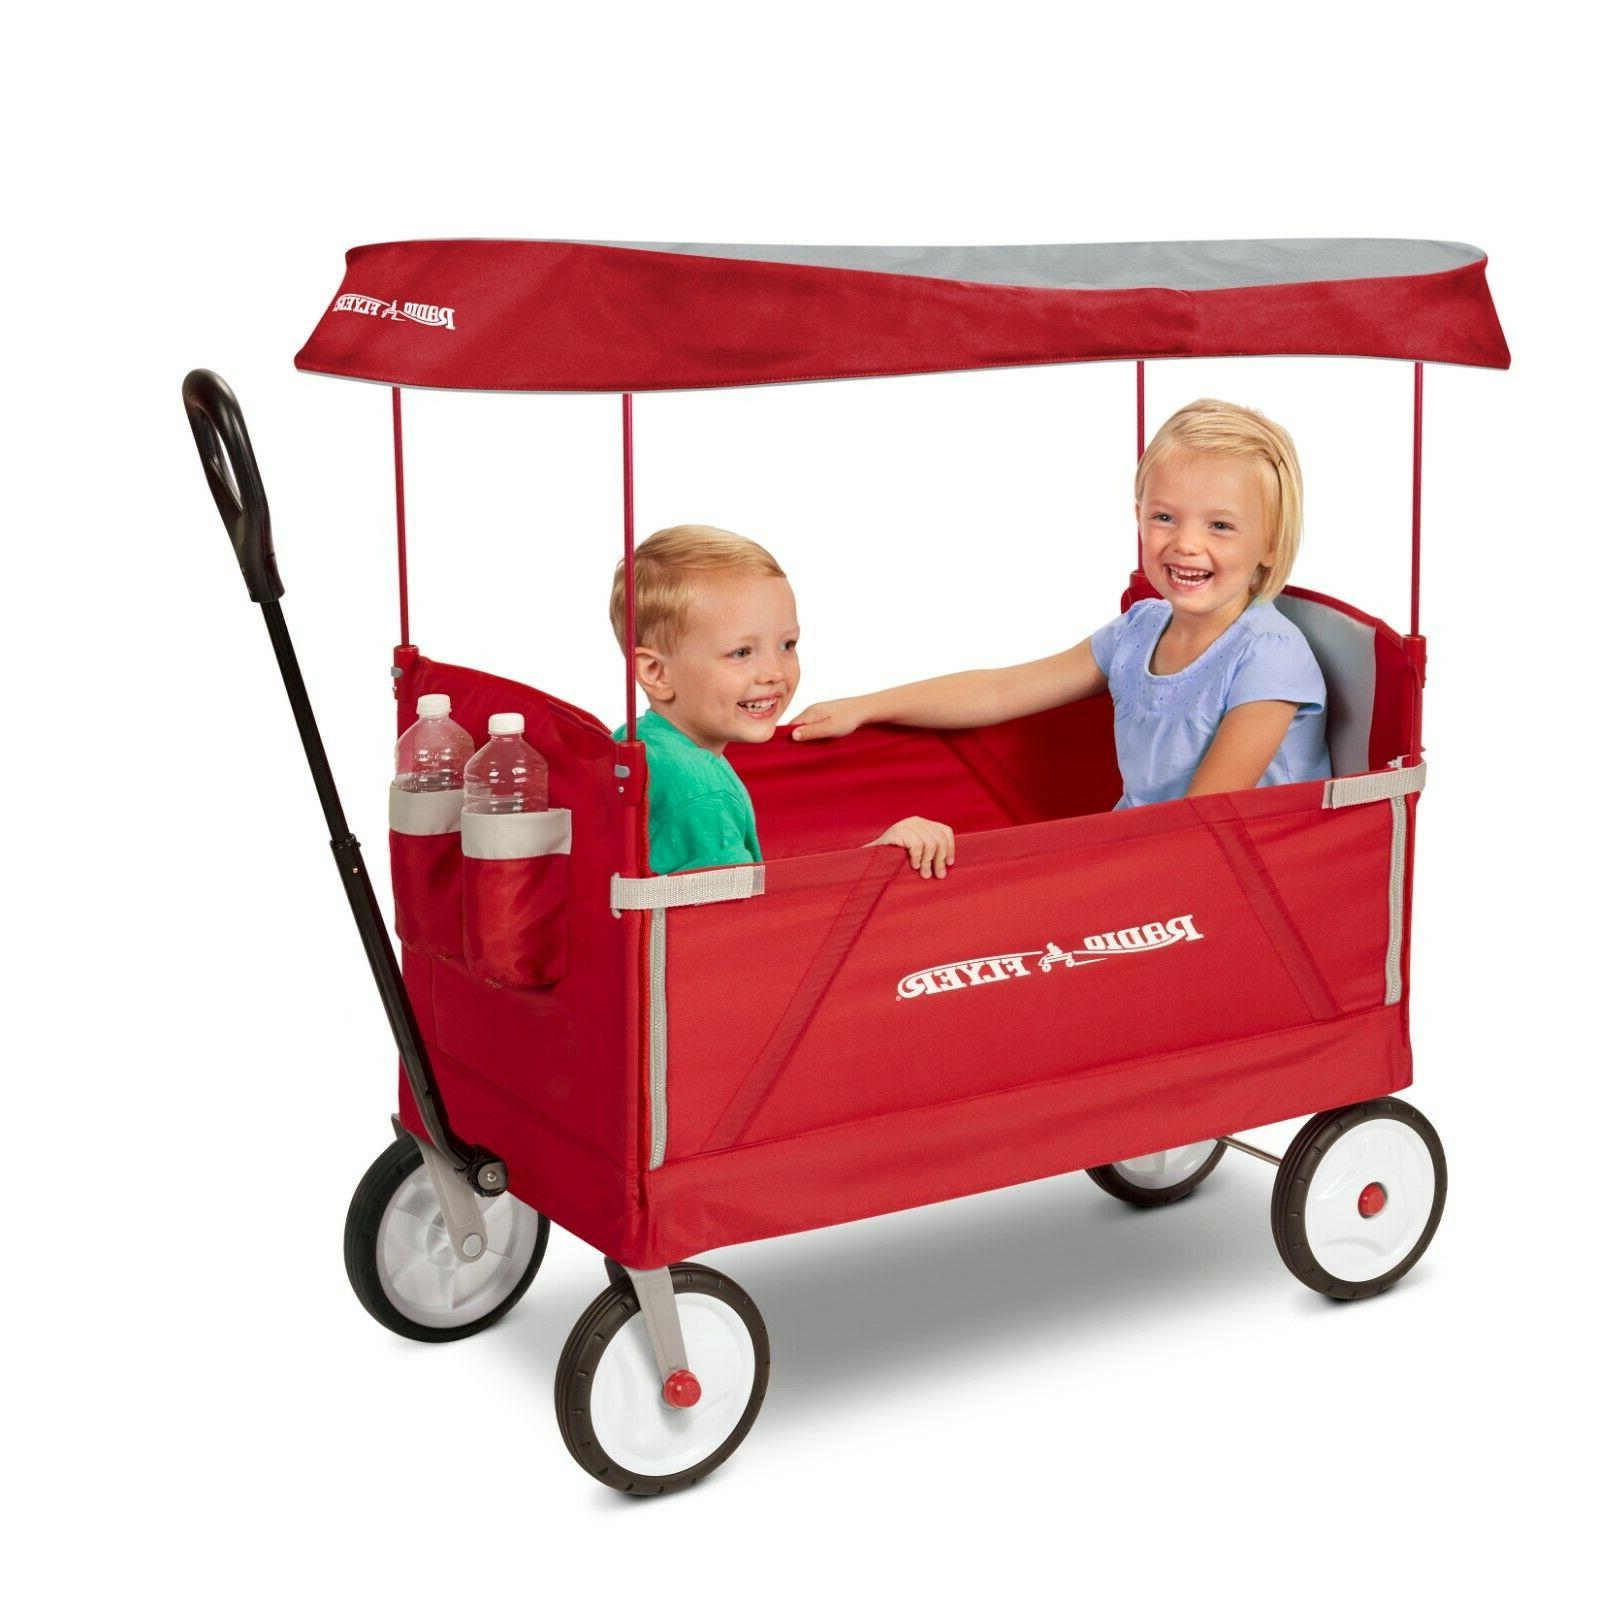 Wagons For Kids To Ride In Push Pushable Pull Pullable EZ Fo